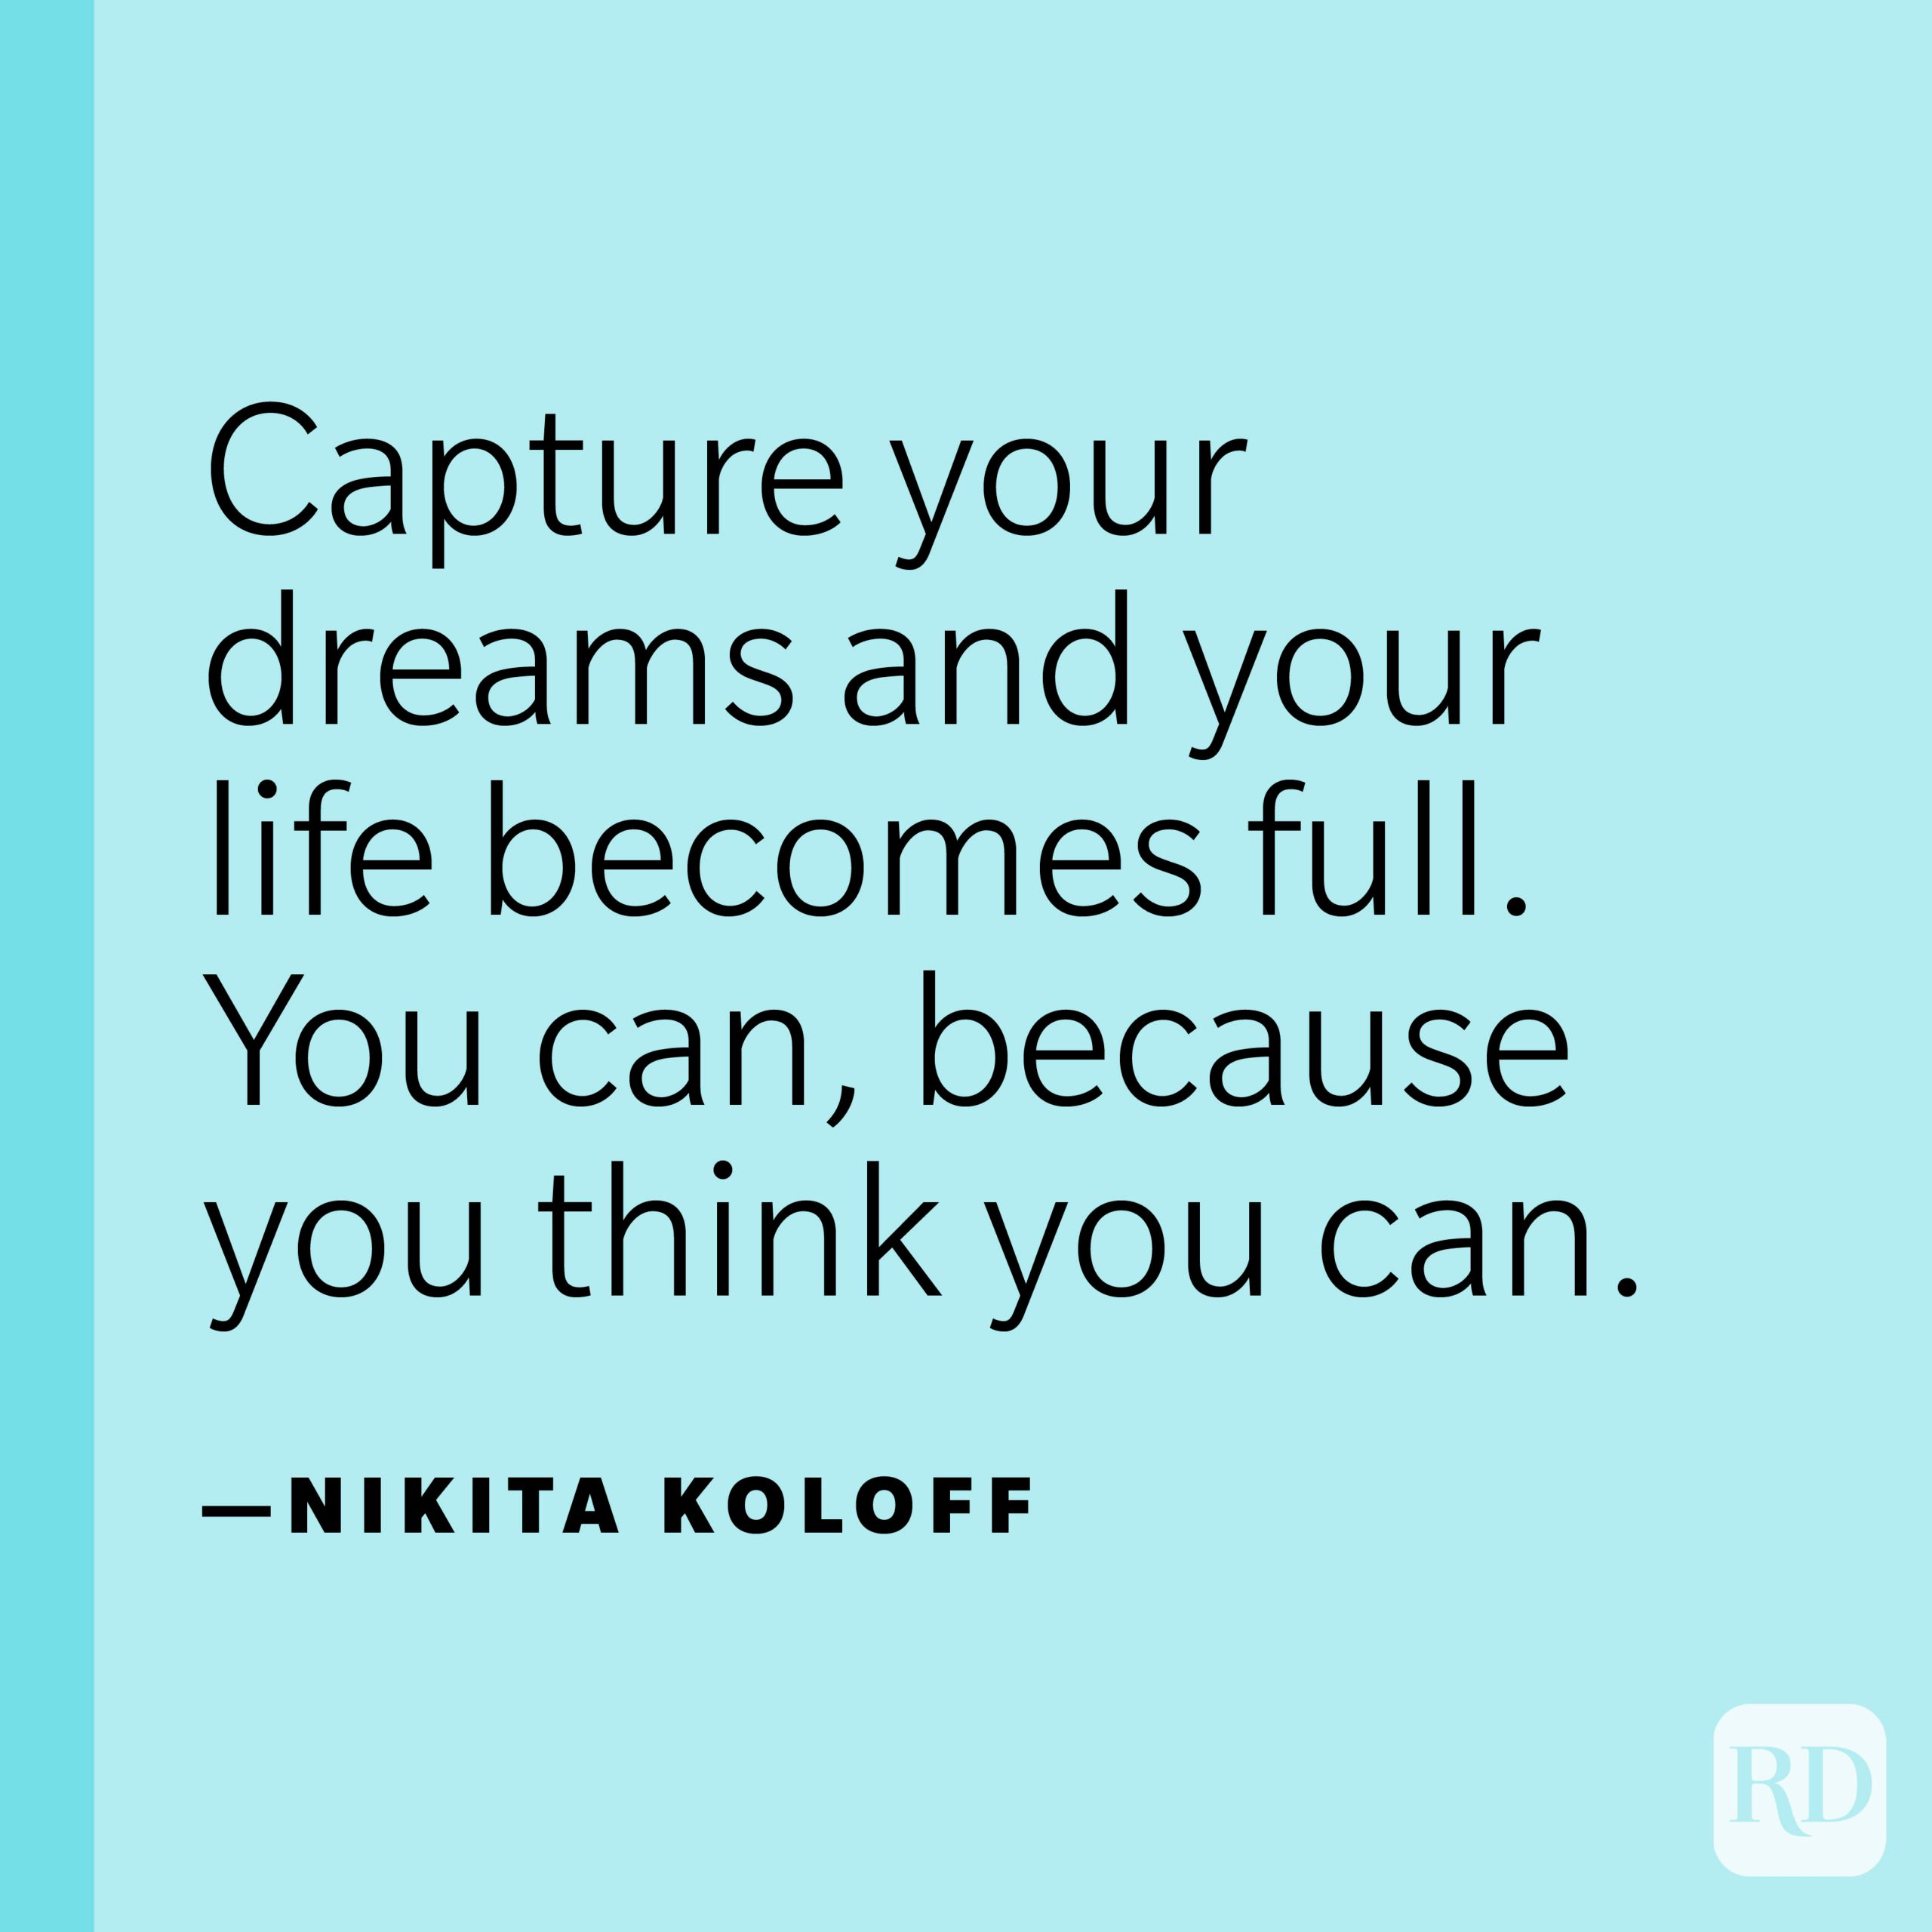 """""""Capture your dreams and your life becomes full. You can, because you think you can."""" —Nikita Koloff."""